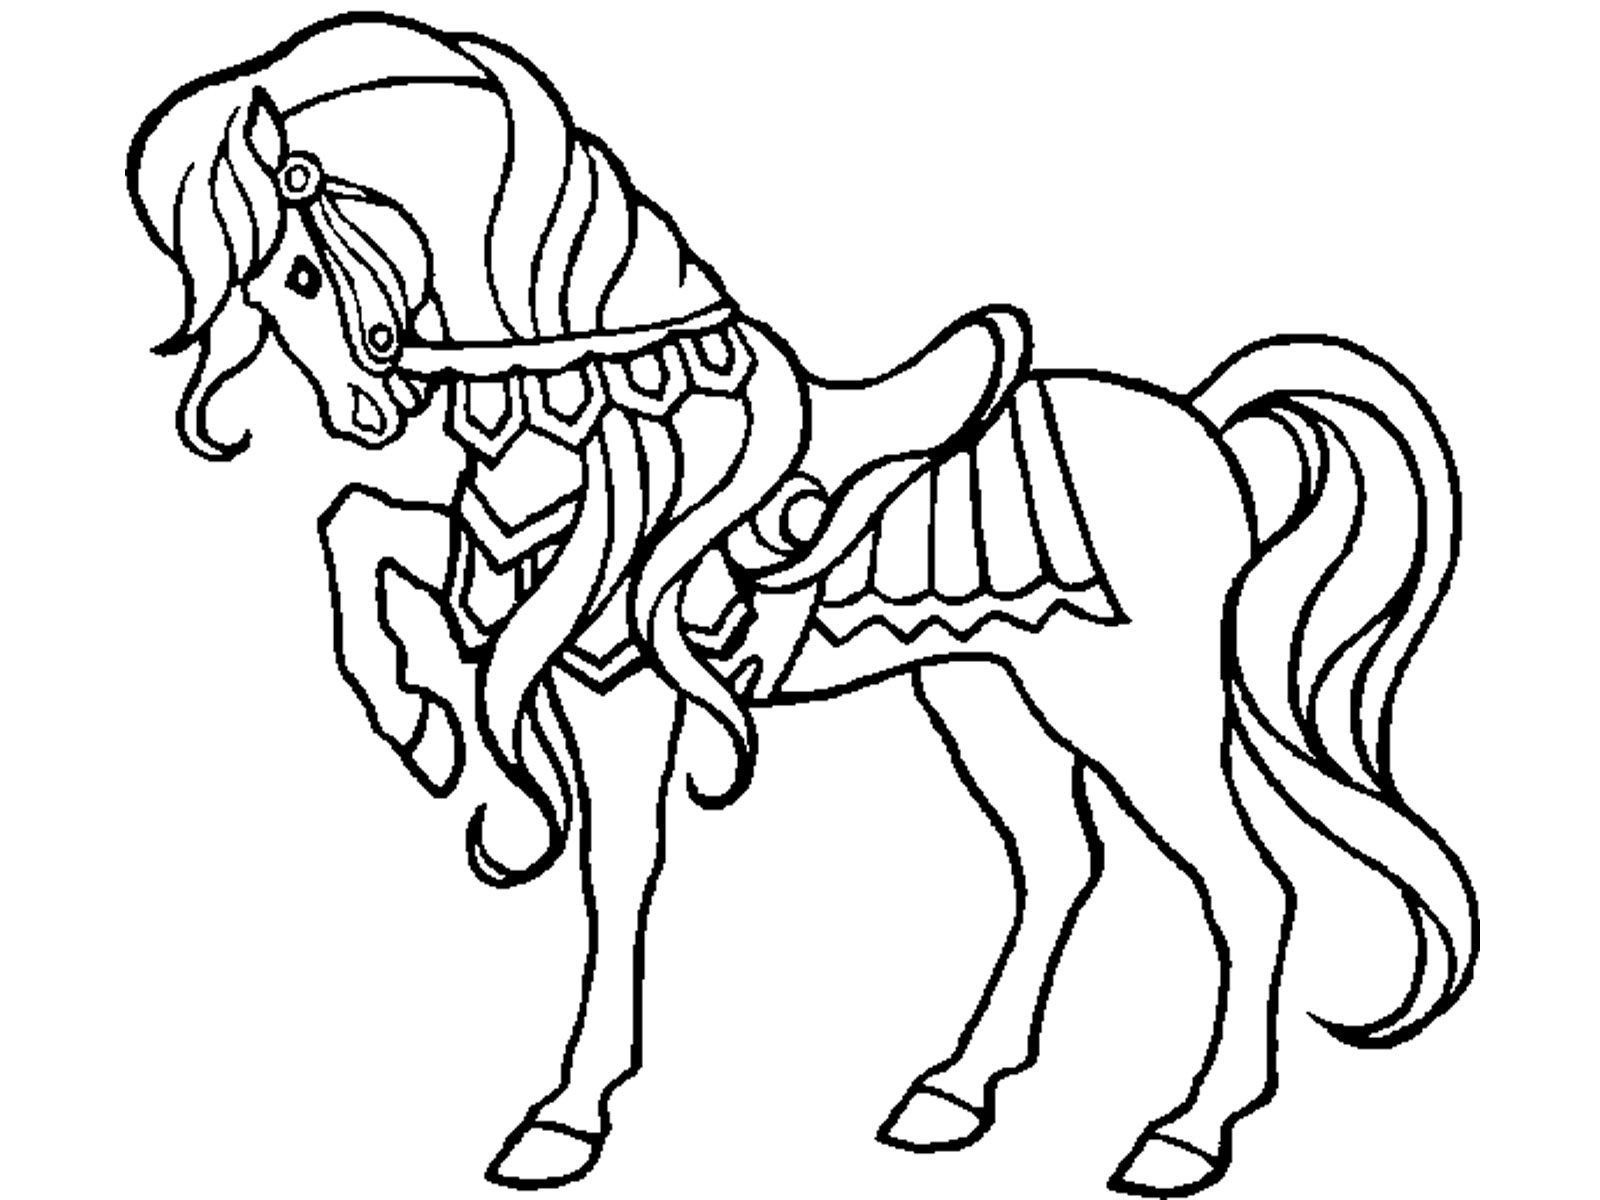 Free animals horse printable coloring pages for for Horse coloring pages printable free